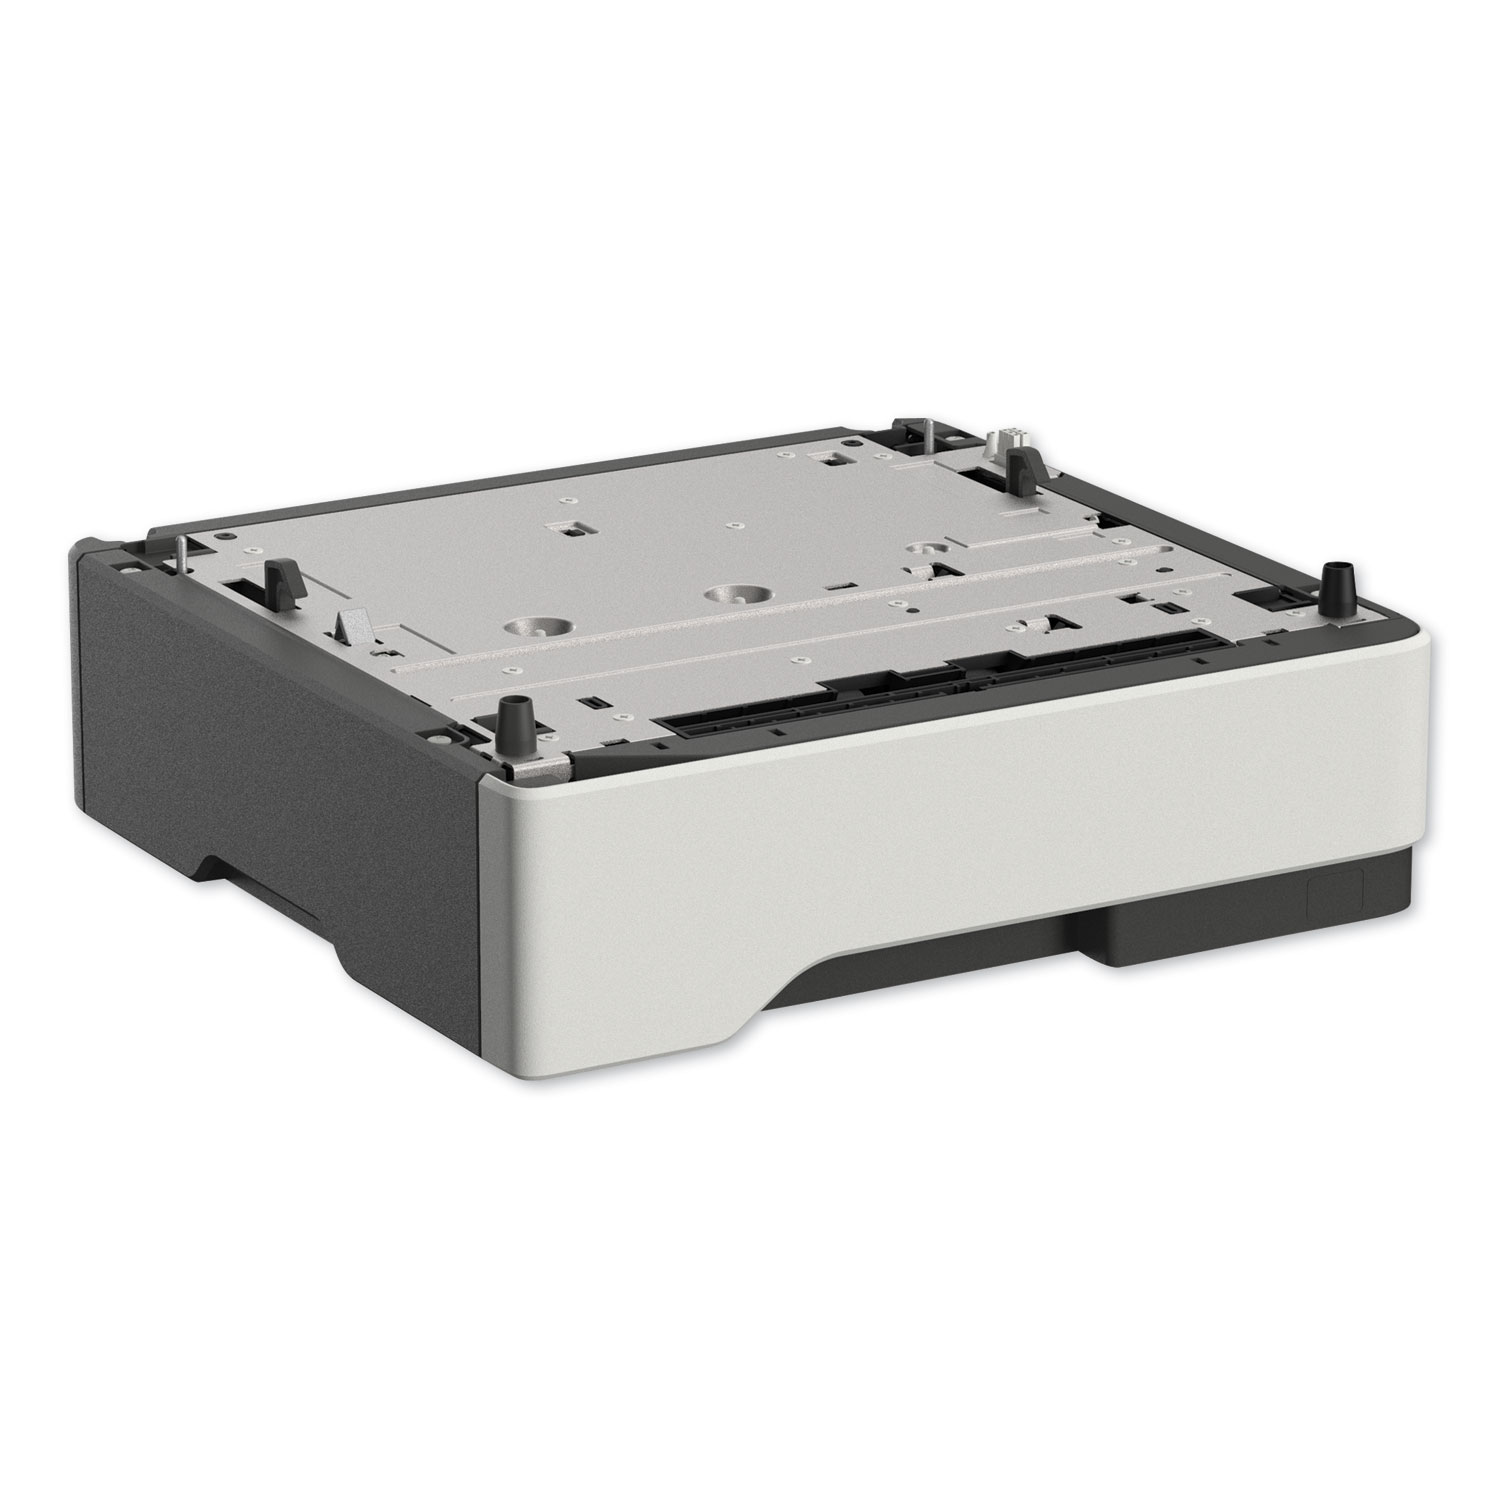 50G0802 550-Sheet Tray for MS7/MS8/MX7 Printers